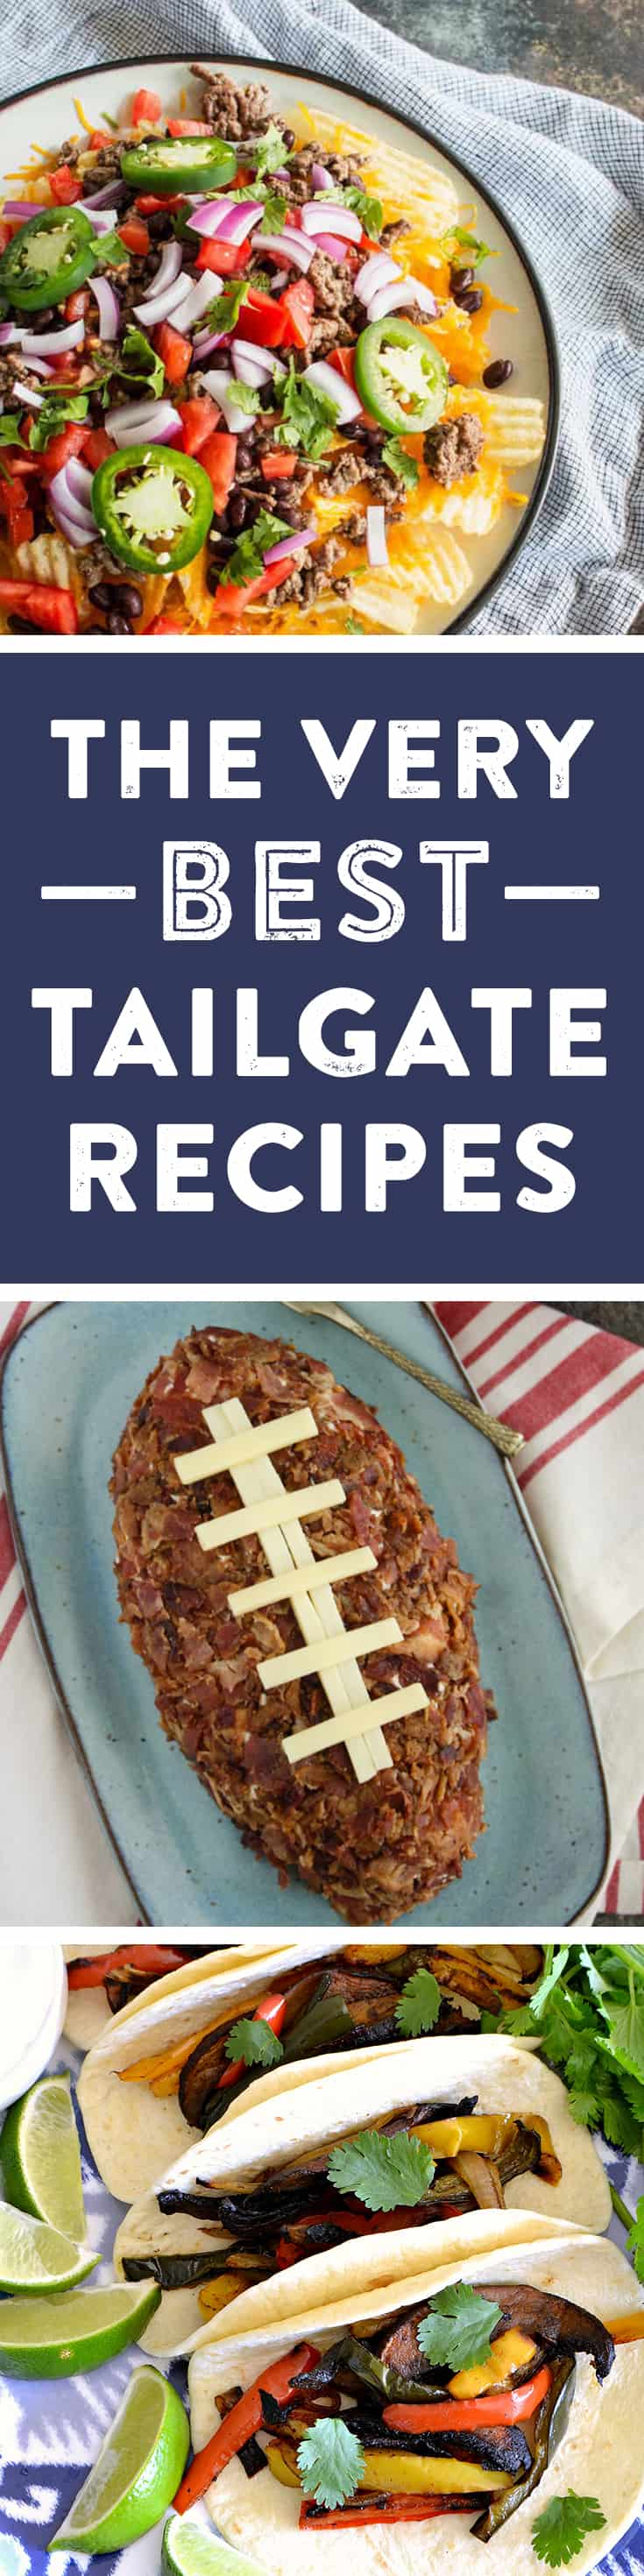 Here are 19 football tailgating recipes to enjoy all season long! (via feastandwest.com)